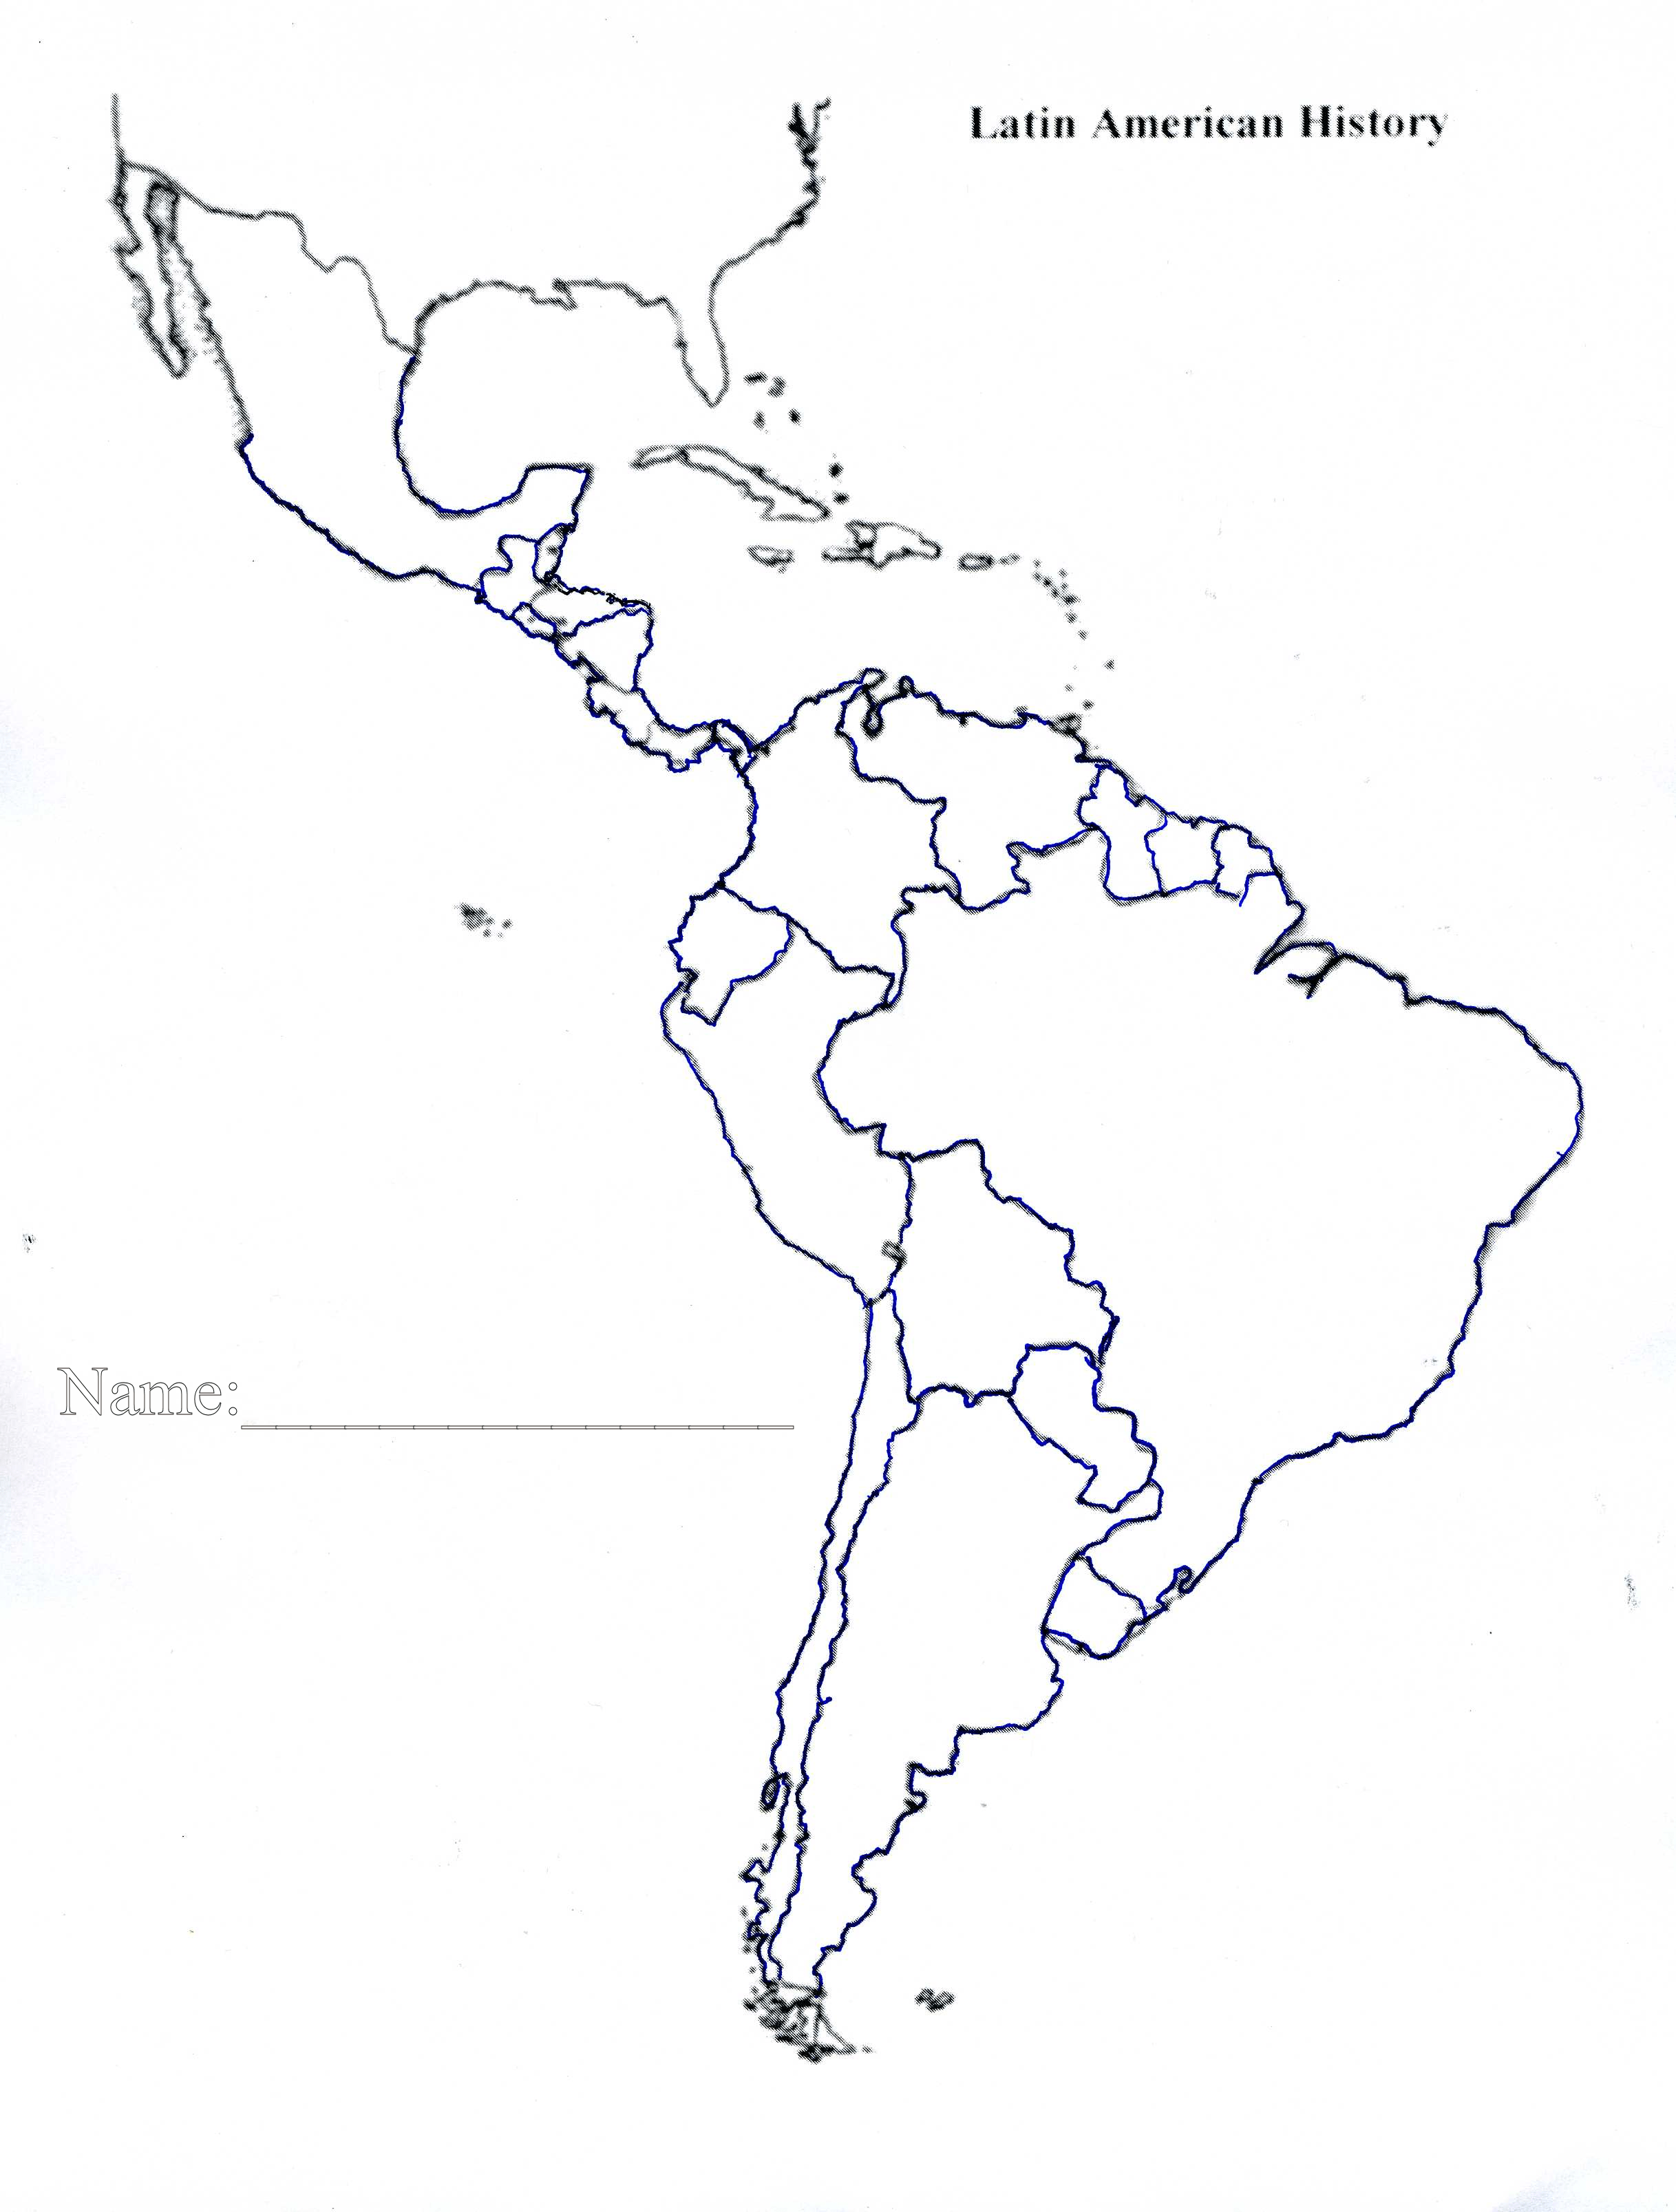 Blank Outline Map Of Latin America